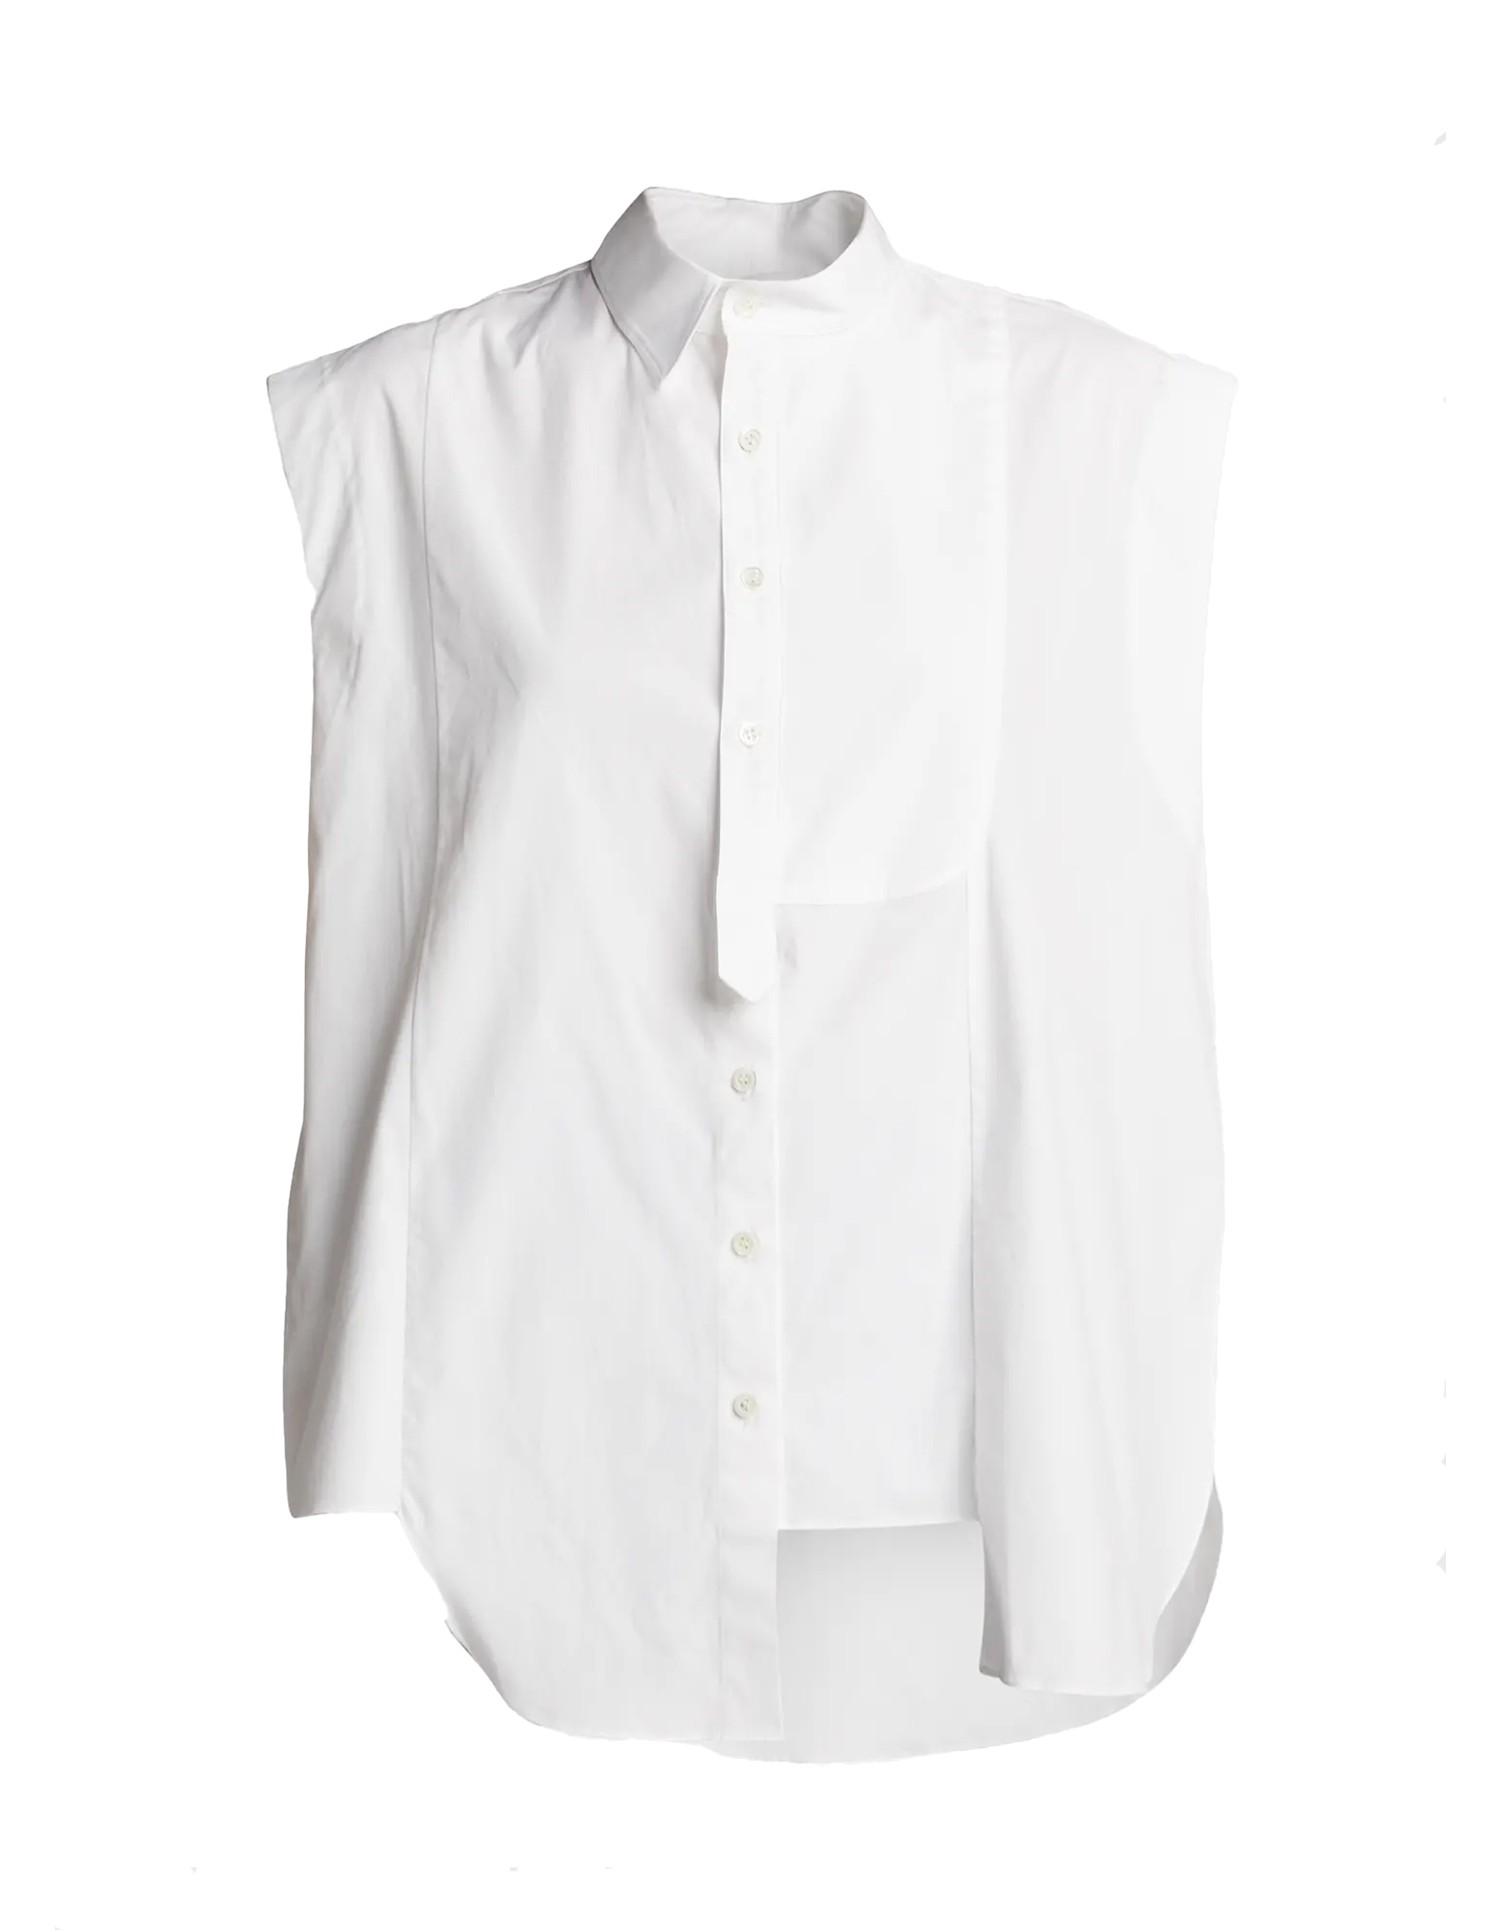 MONSE Half and Half Sleeveless Shirt in White on Flat Front View